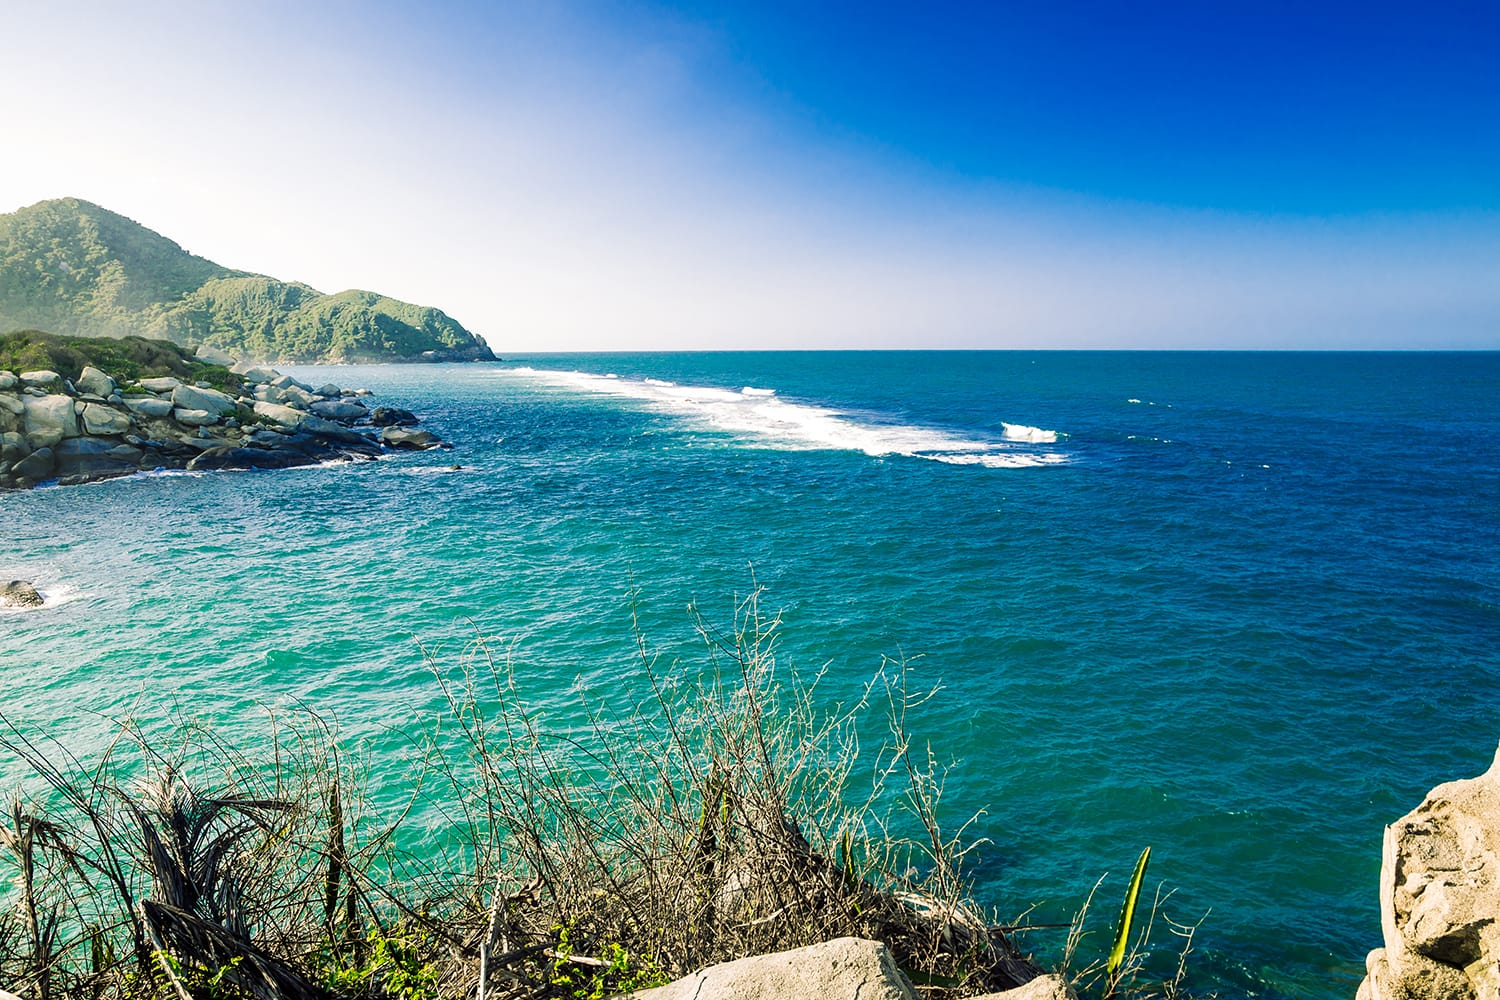 View on tropical sea by National park Tayona in Colombia